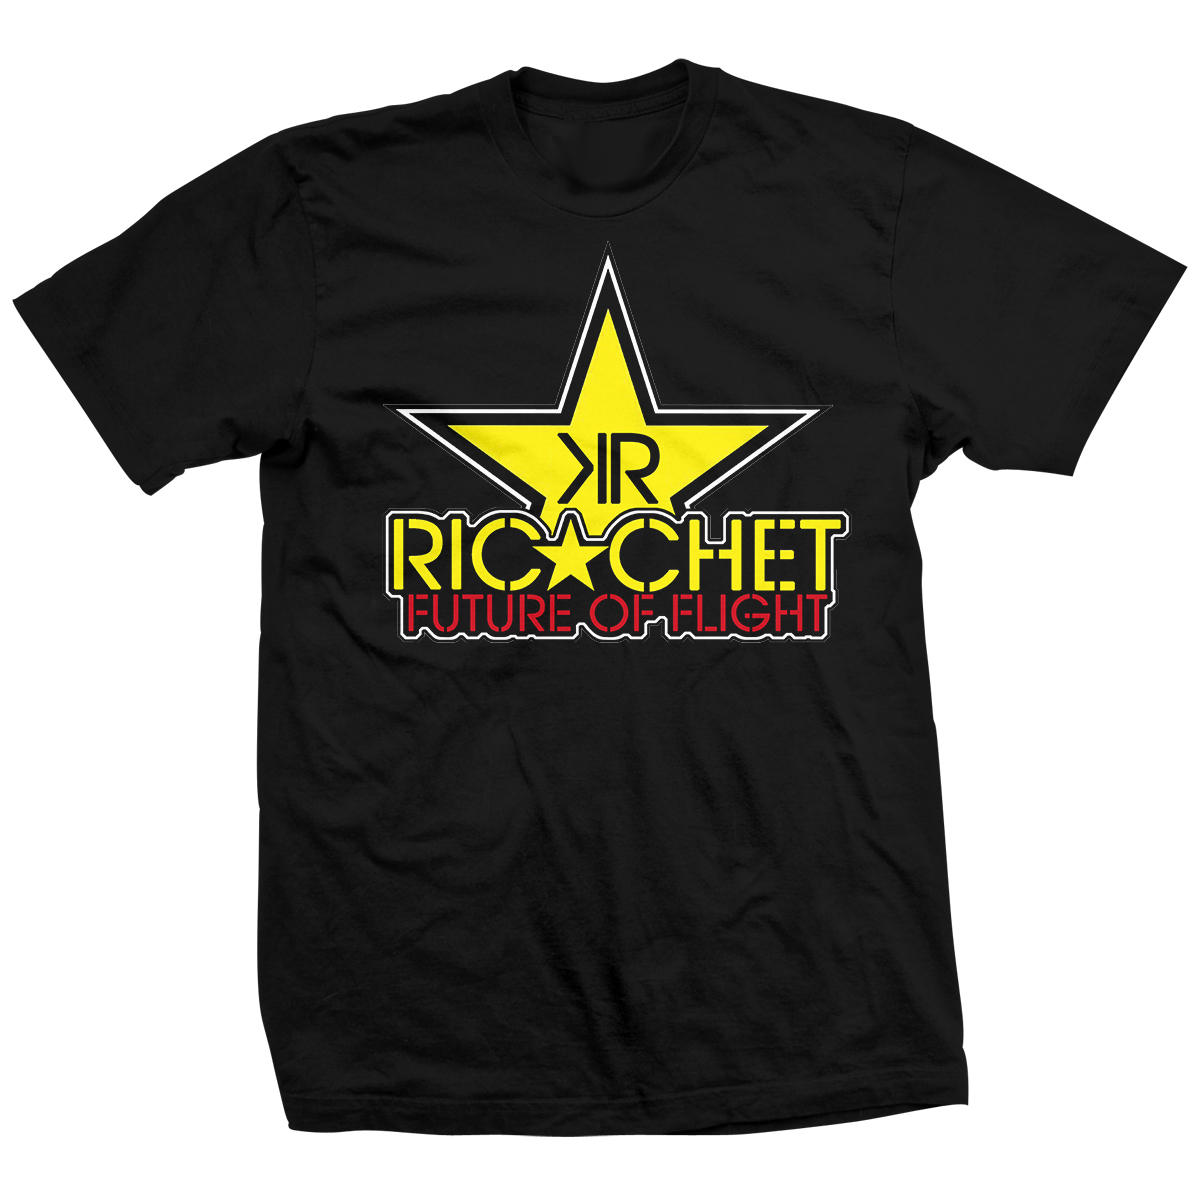 High Flying Rockstar T-shirt